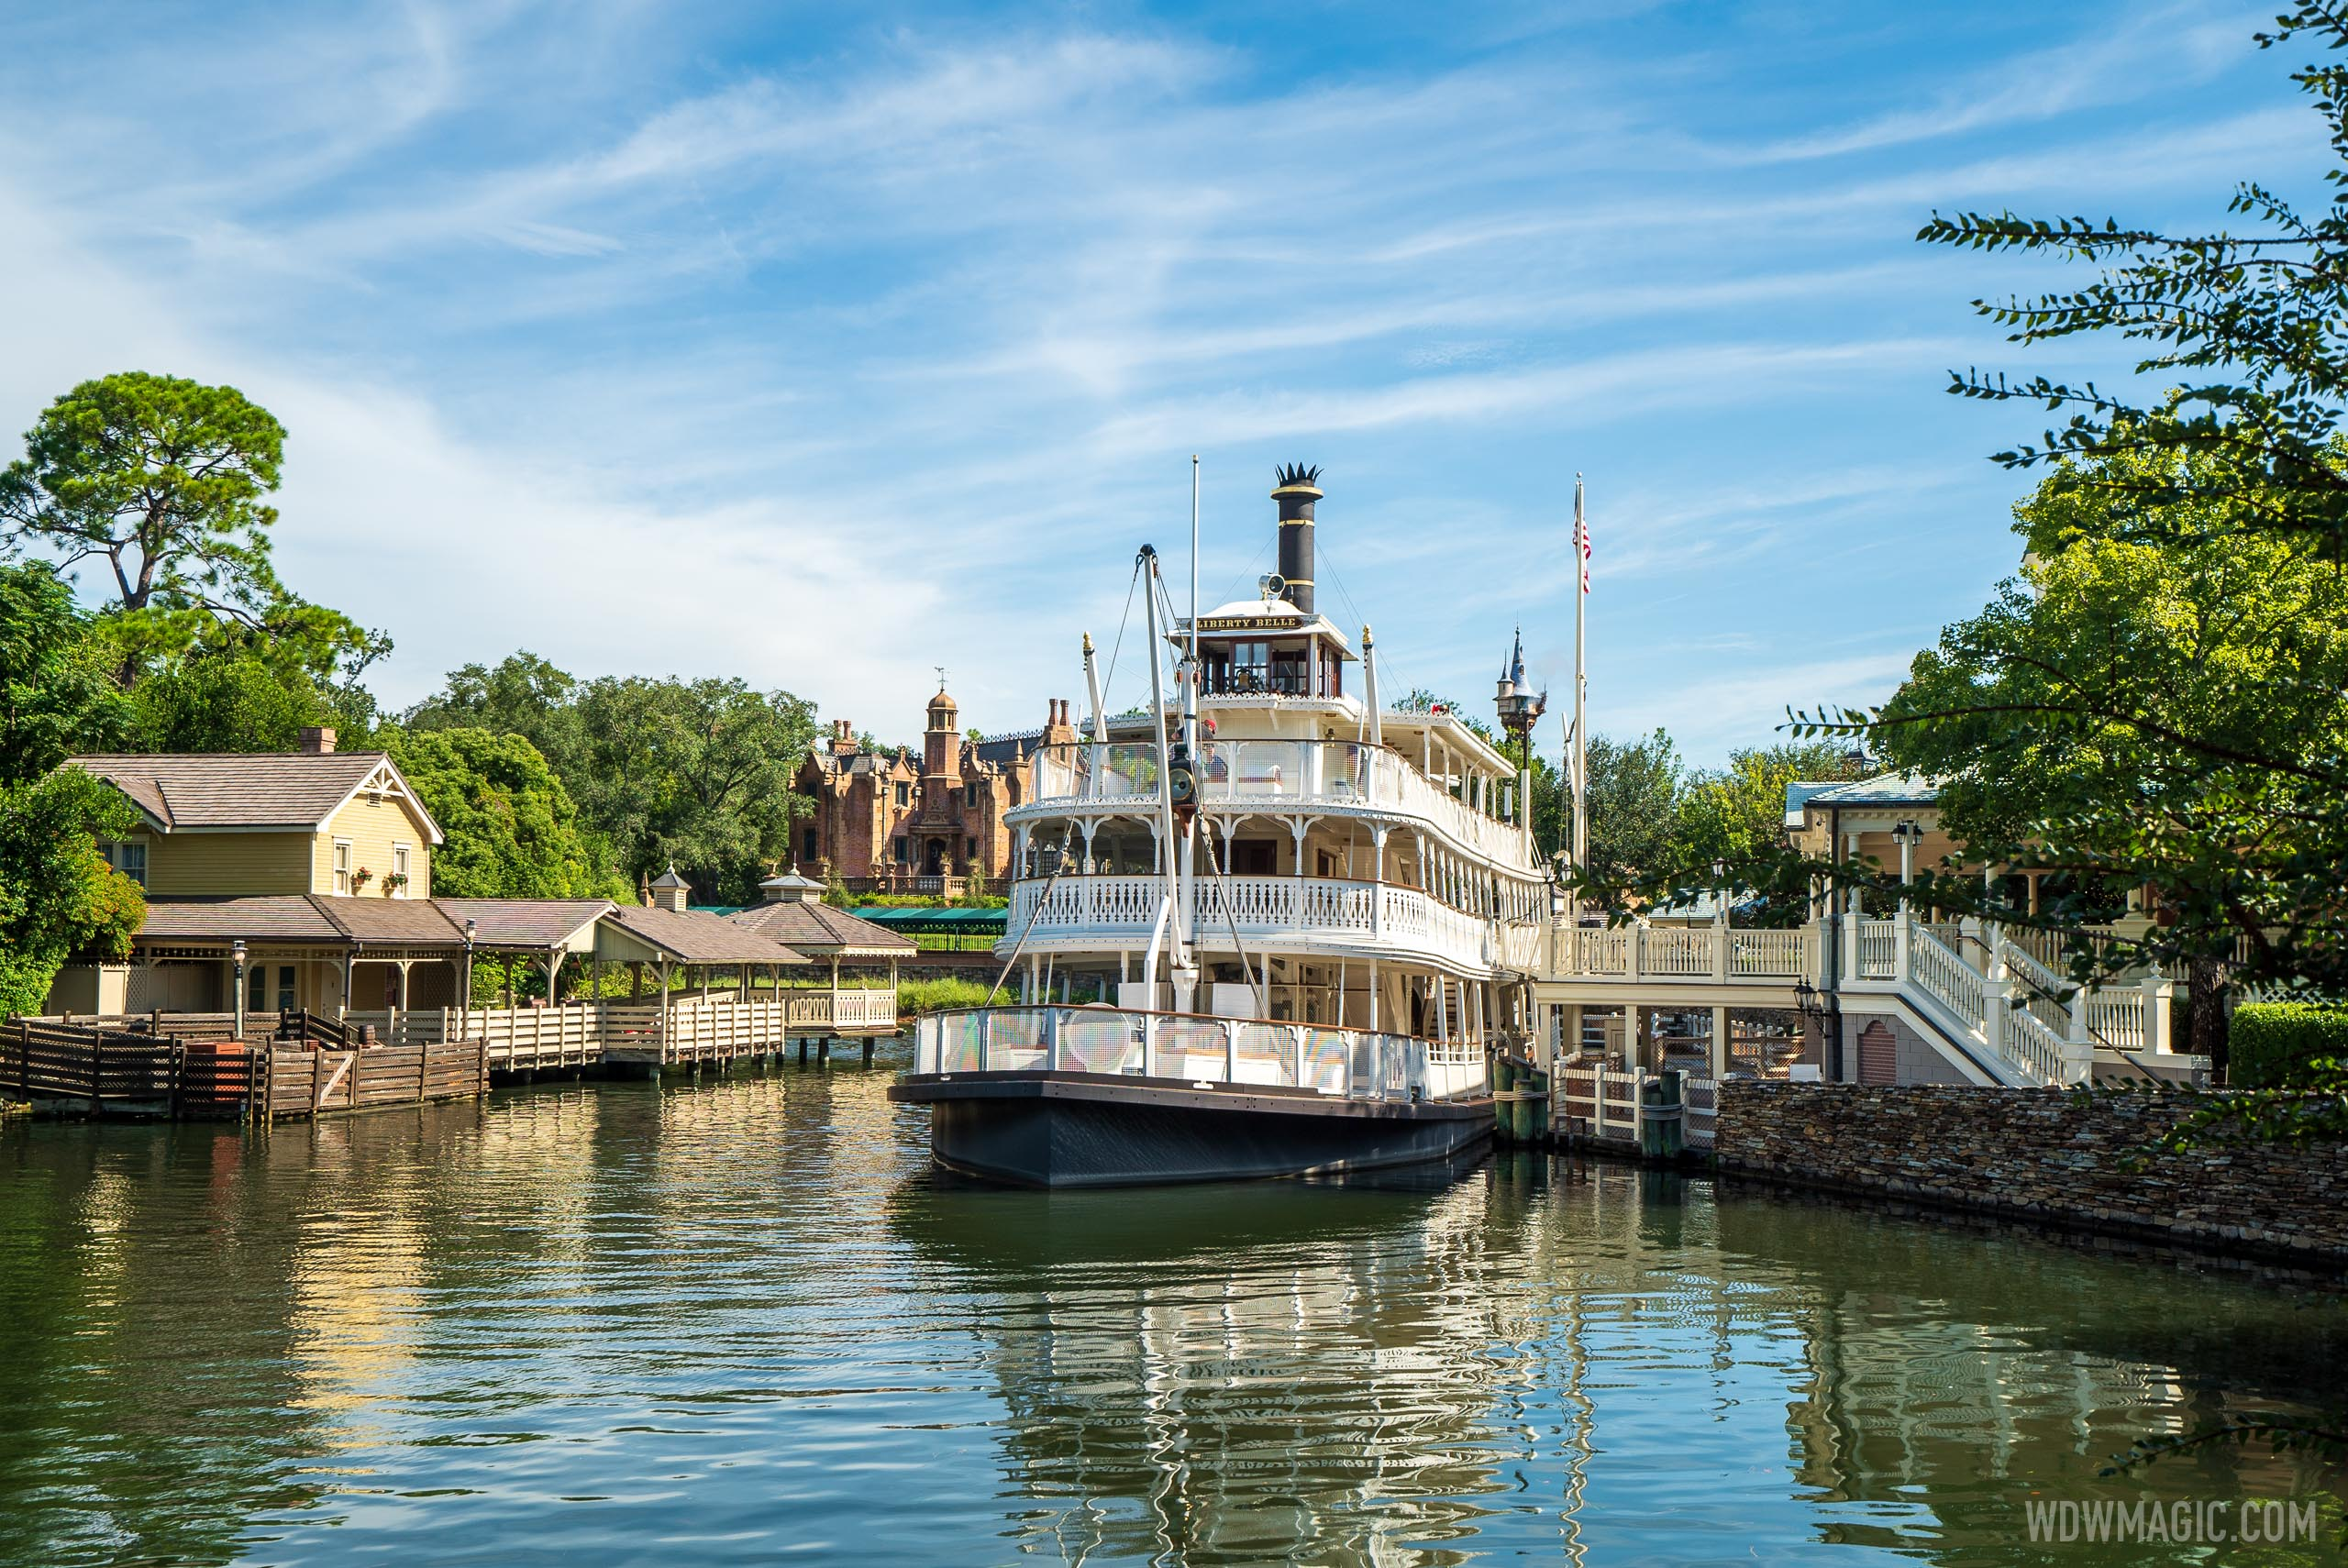 The Riverboat will return to service on Friday February 5